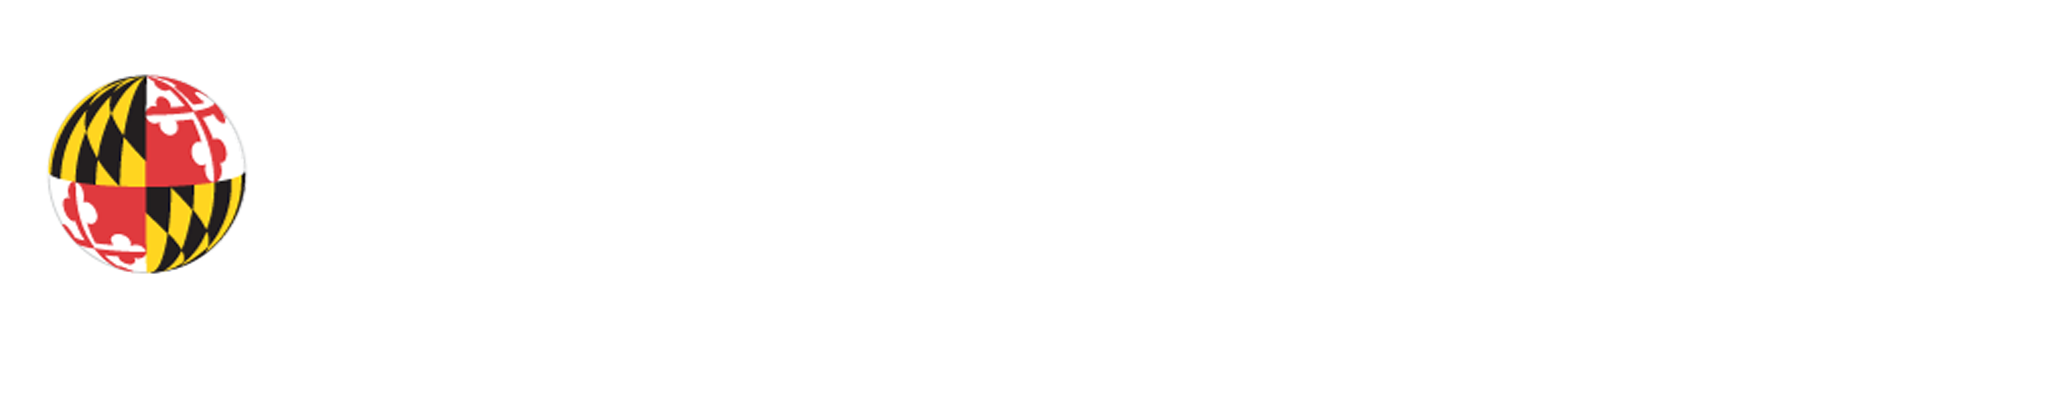 Philip Merrill College of Journalism logo